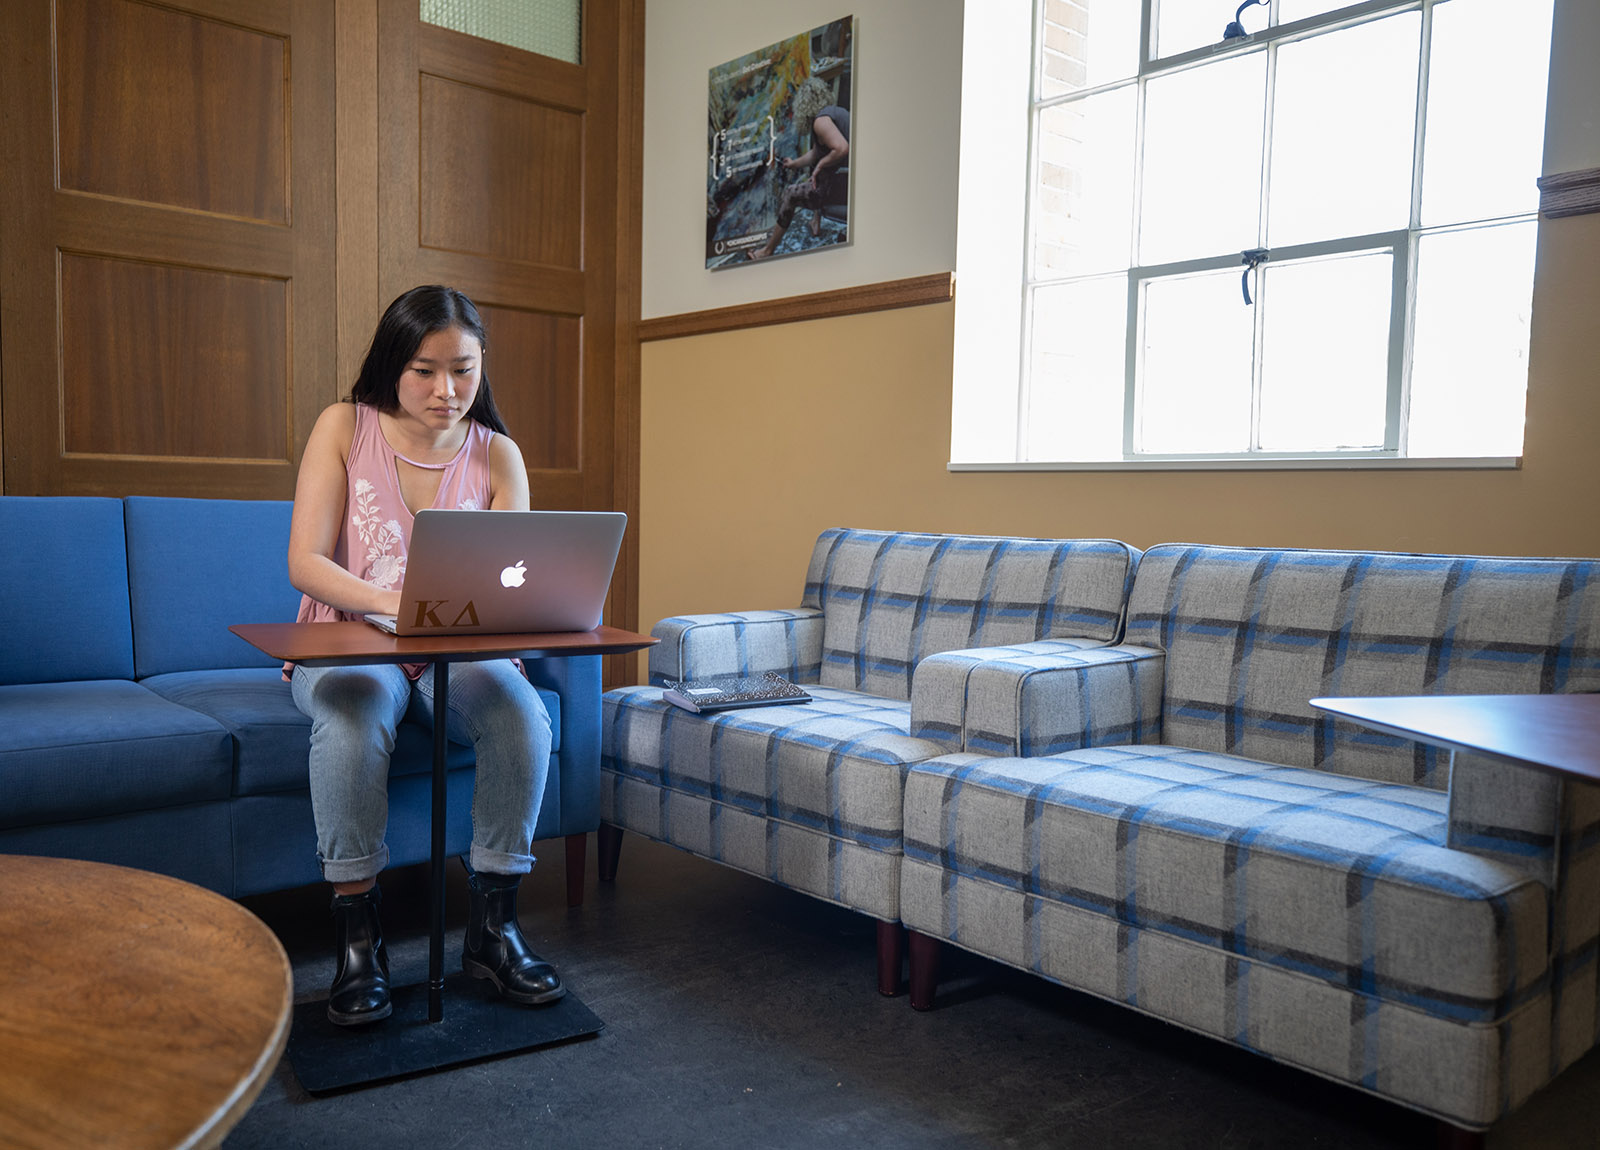 Student sitting in lounge using laptop to study